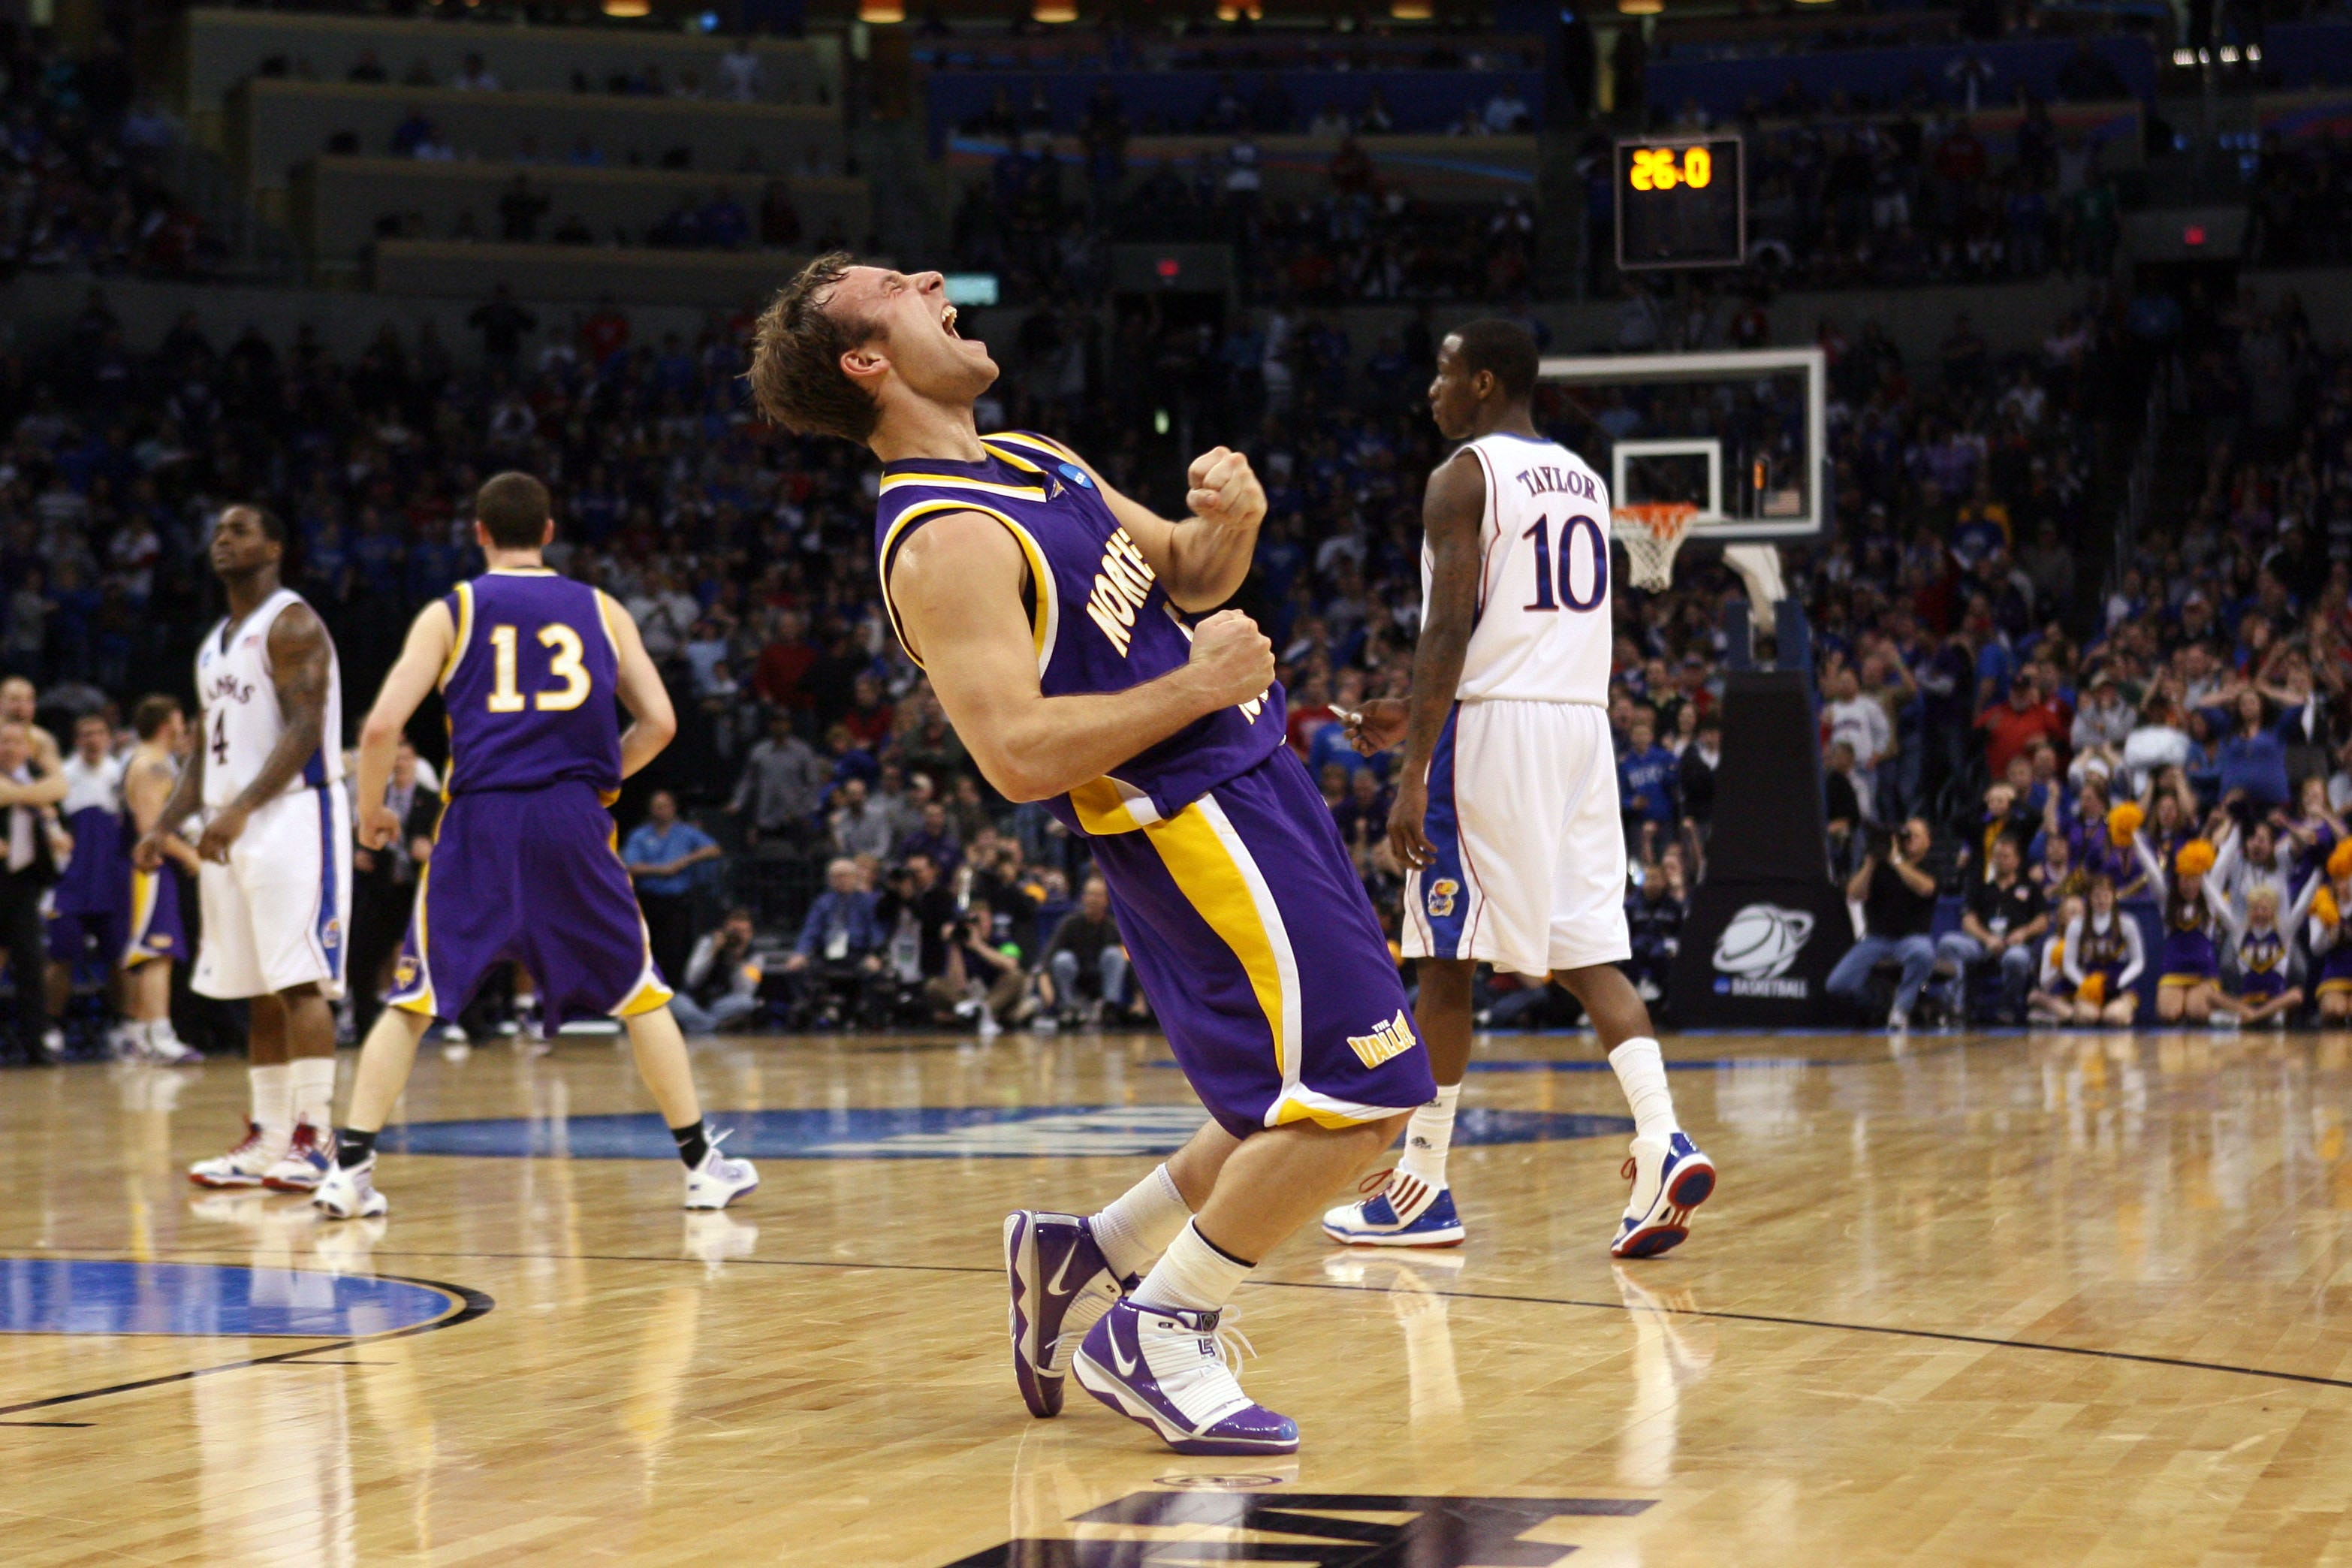 http://www usatoday com/picture-gallery/sports/ncaab/2012/12